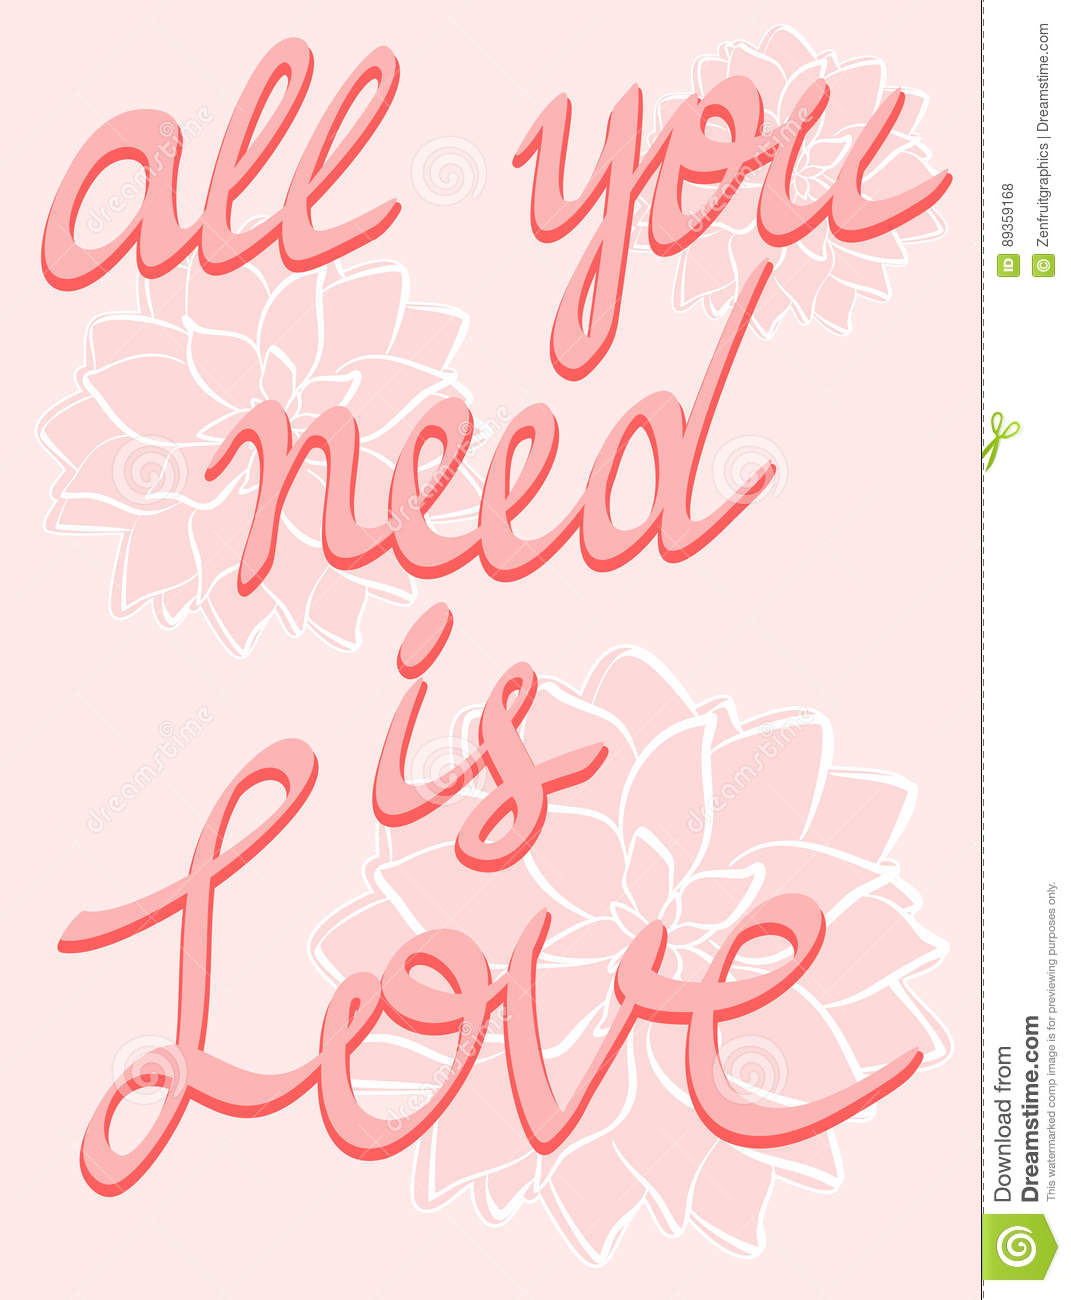 Love poster lettering poster hand written calligraphy on pink love poster lettering poster hand written calligraphy on pink flowers background inspirational quotes poster mightylinksfo